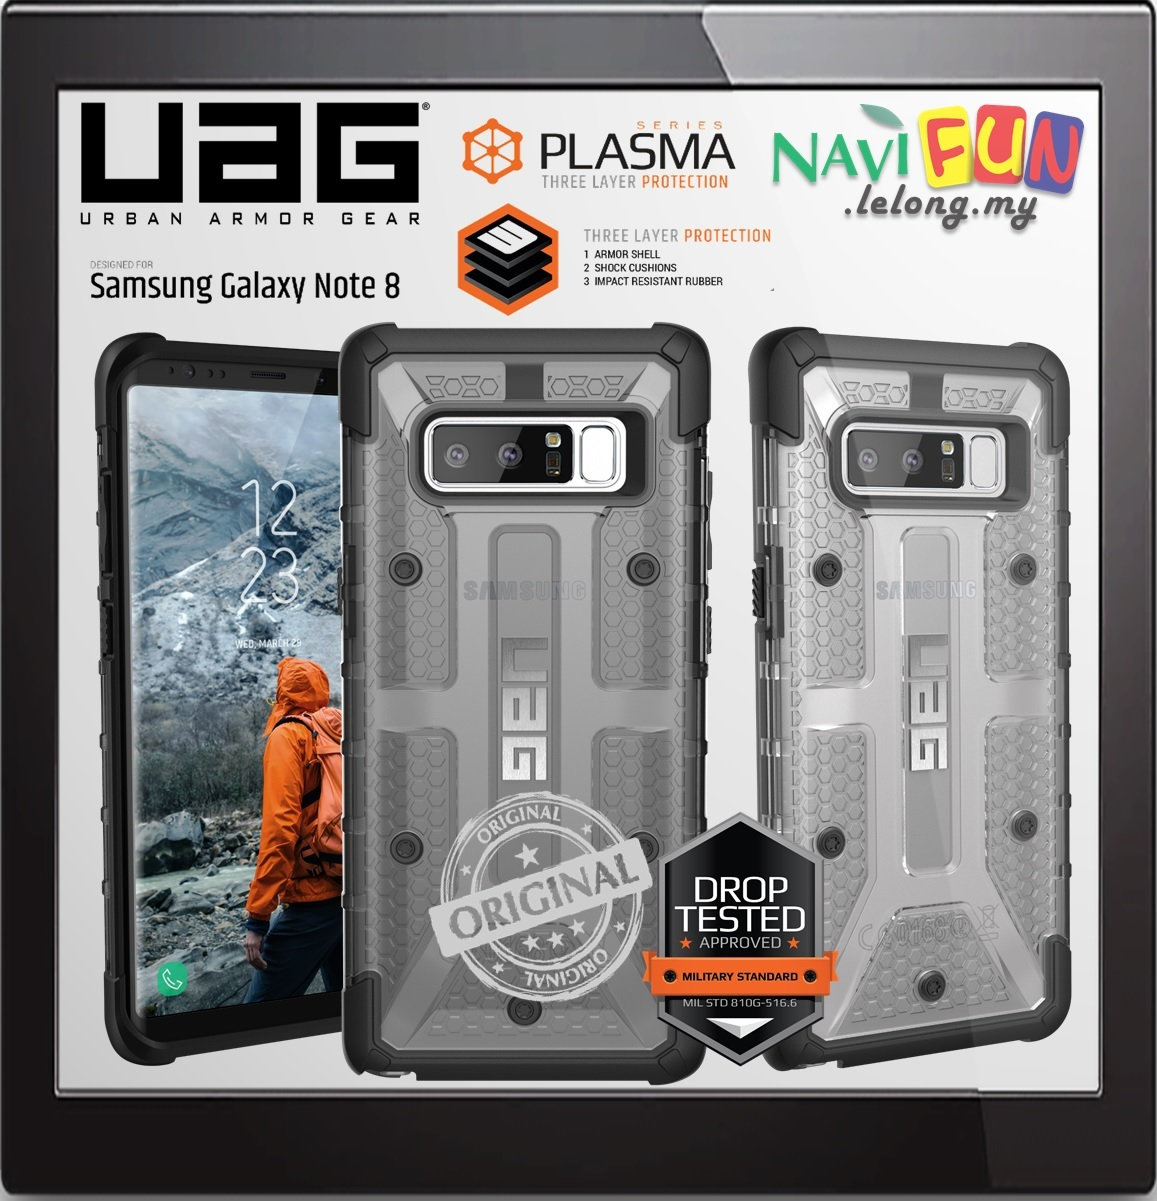 Galaxy s6 cases shop samsung cases online uag urban armor gear - Urban Armor Gear Uag Plasma Case Samsung Galaxy Note 8